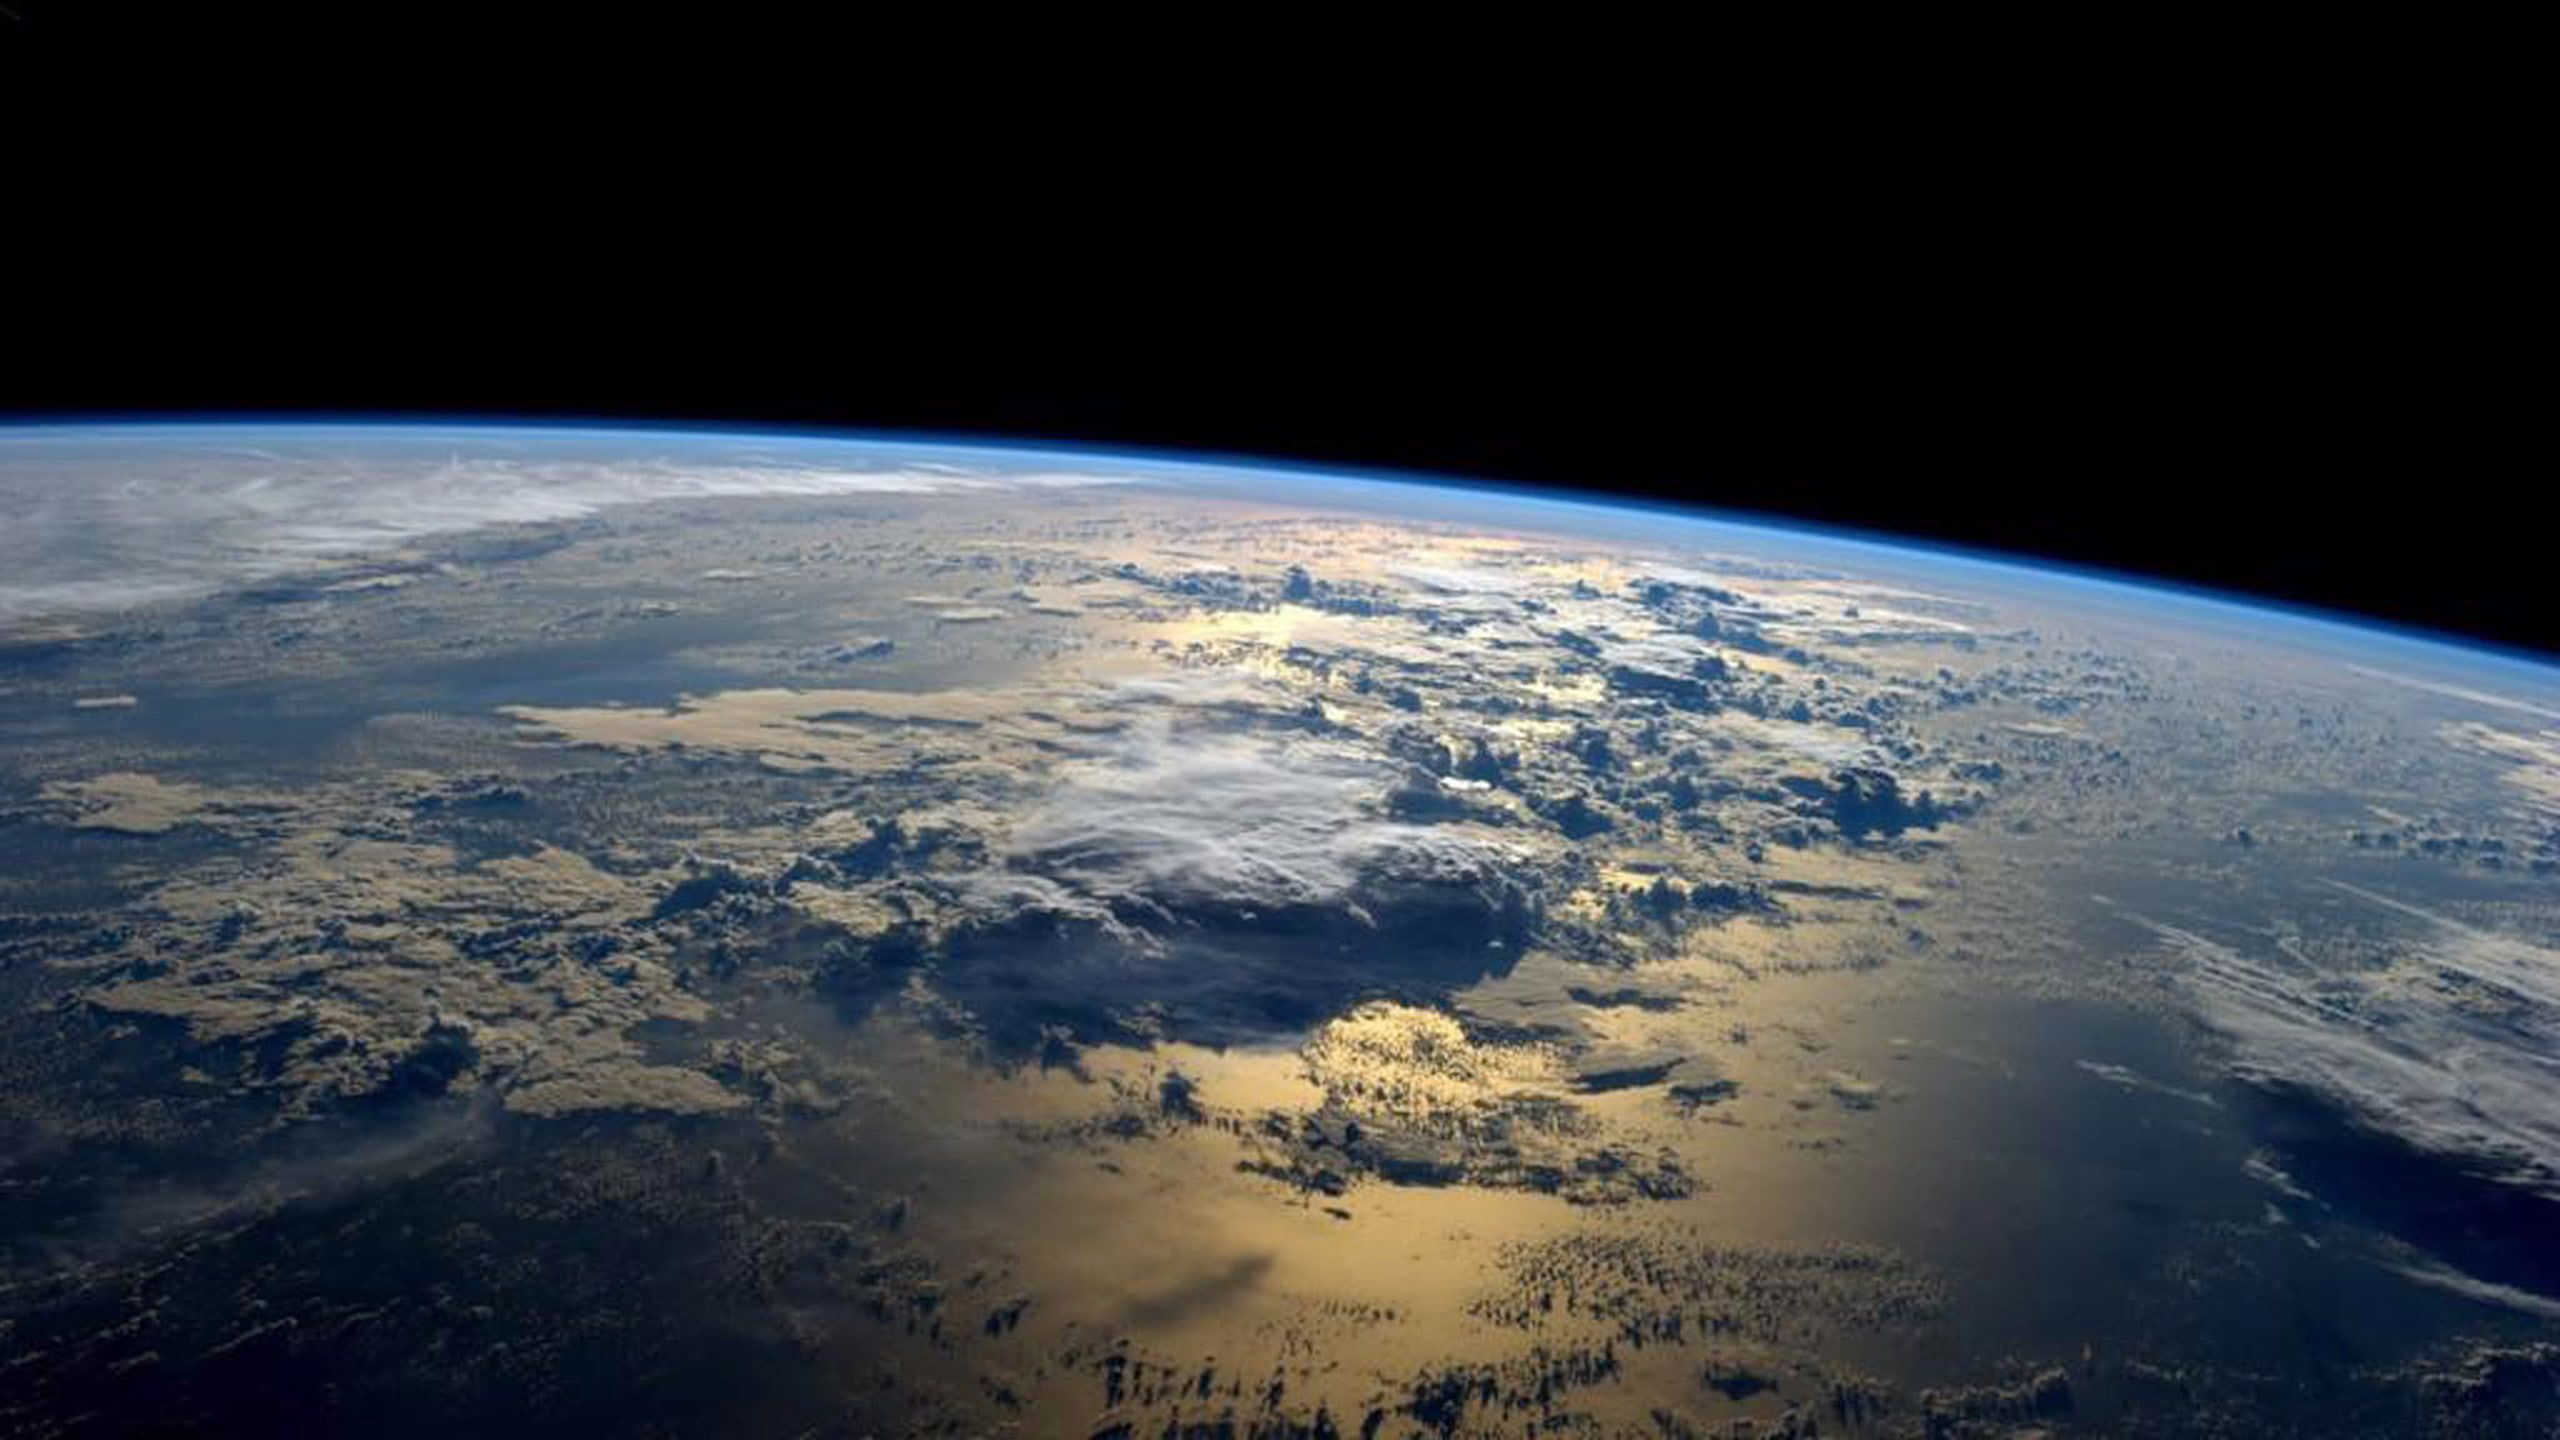 Earth Seen From The International Space Station 2k Wallpaper Hdwallpaper Desktop Earth From Space New Continent Earth